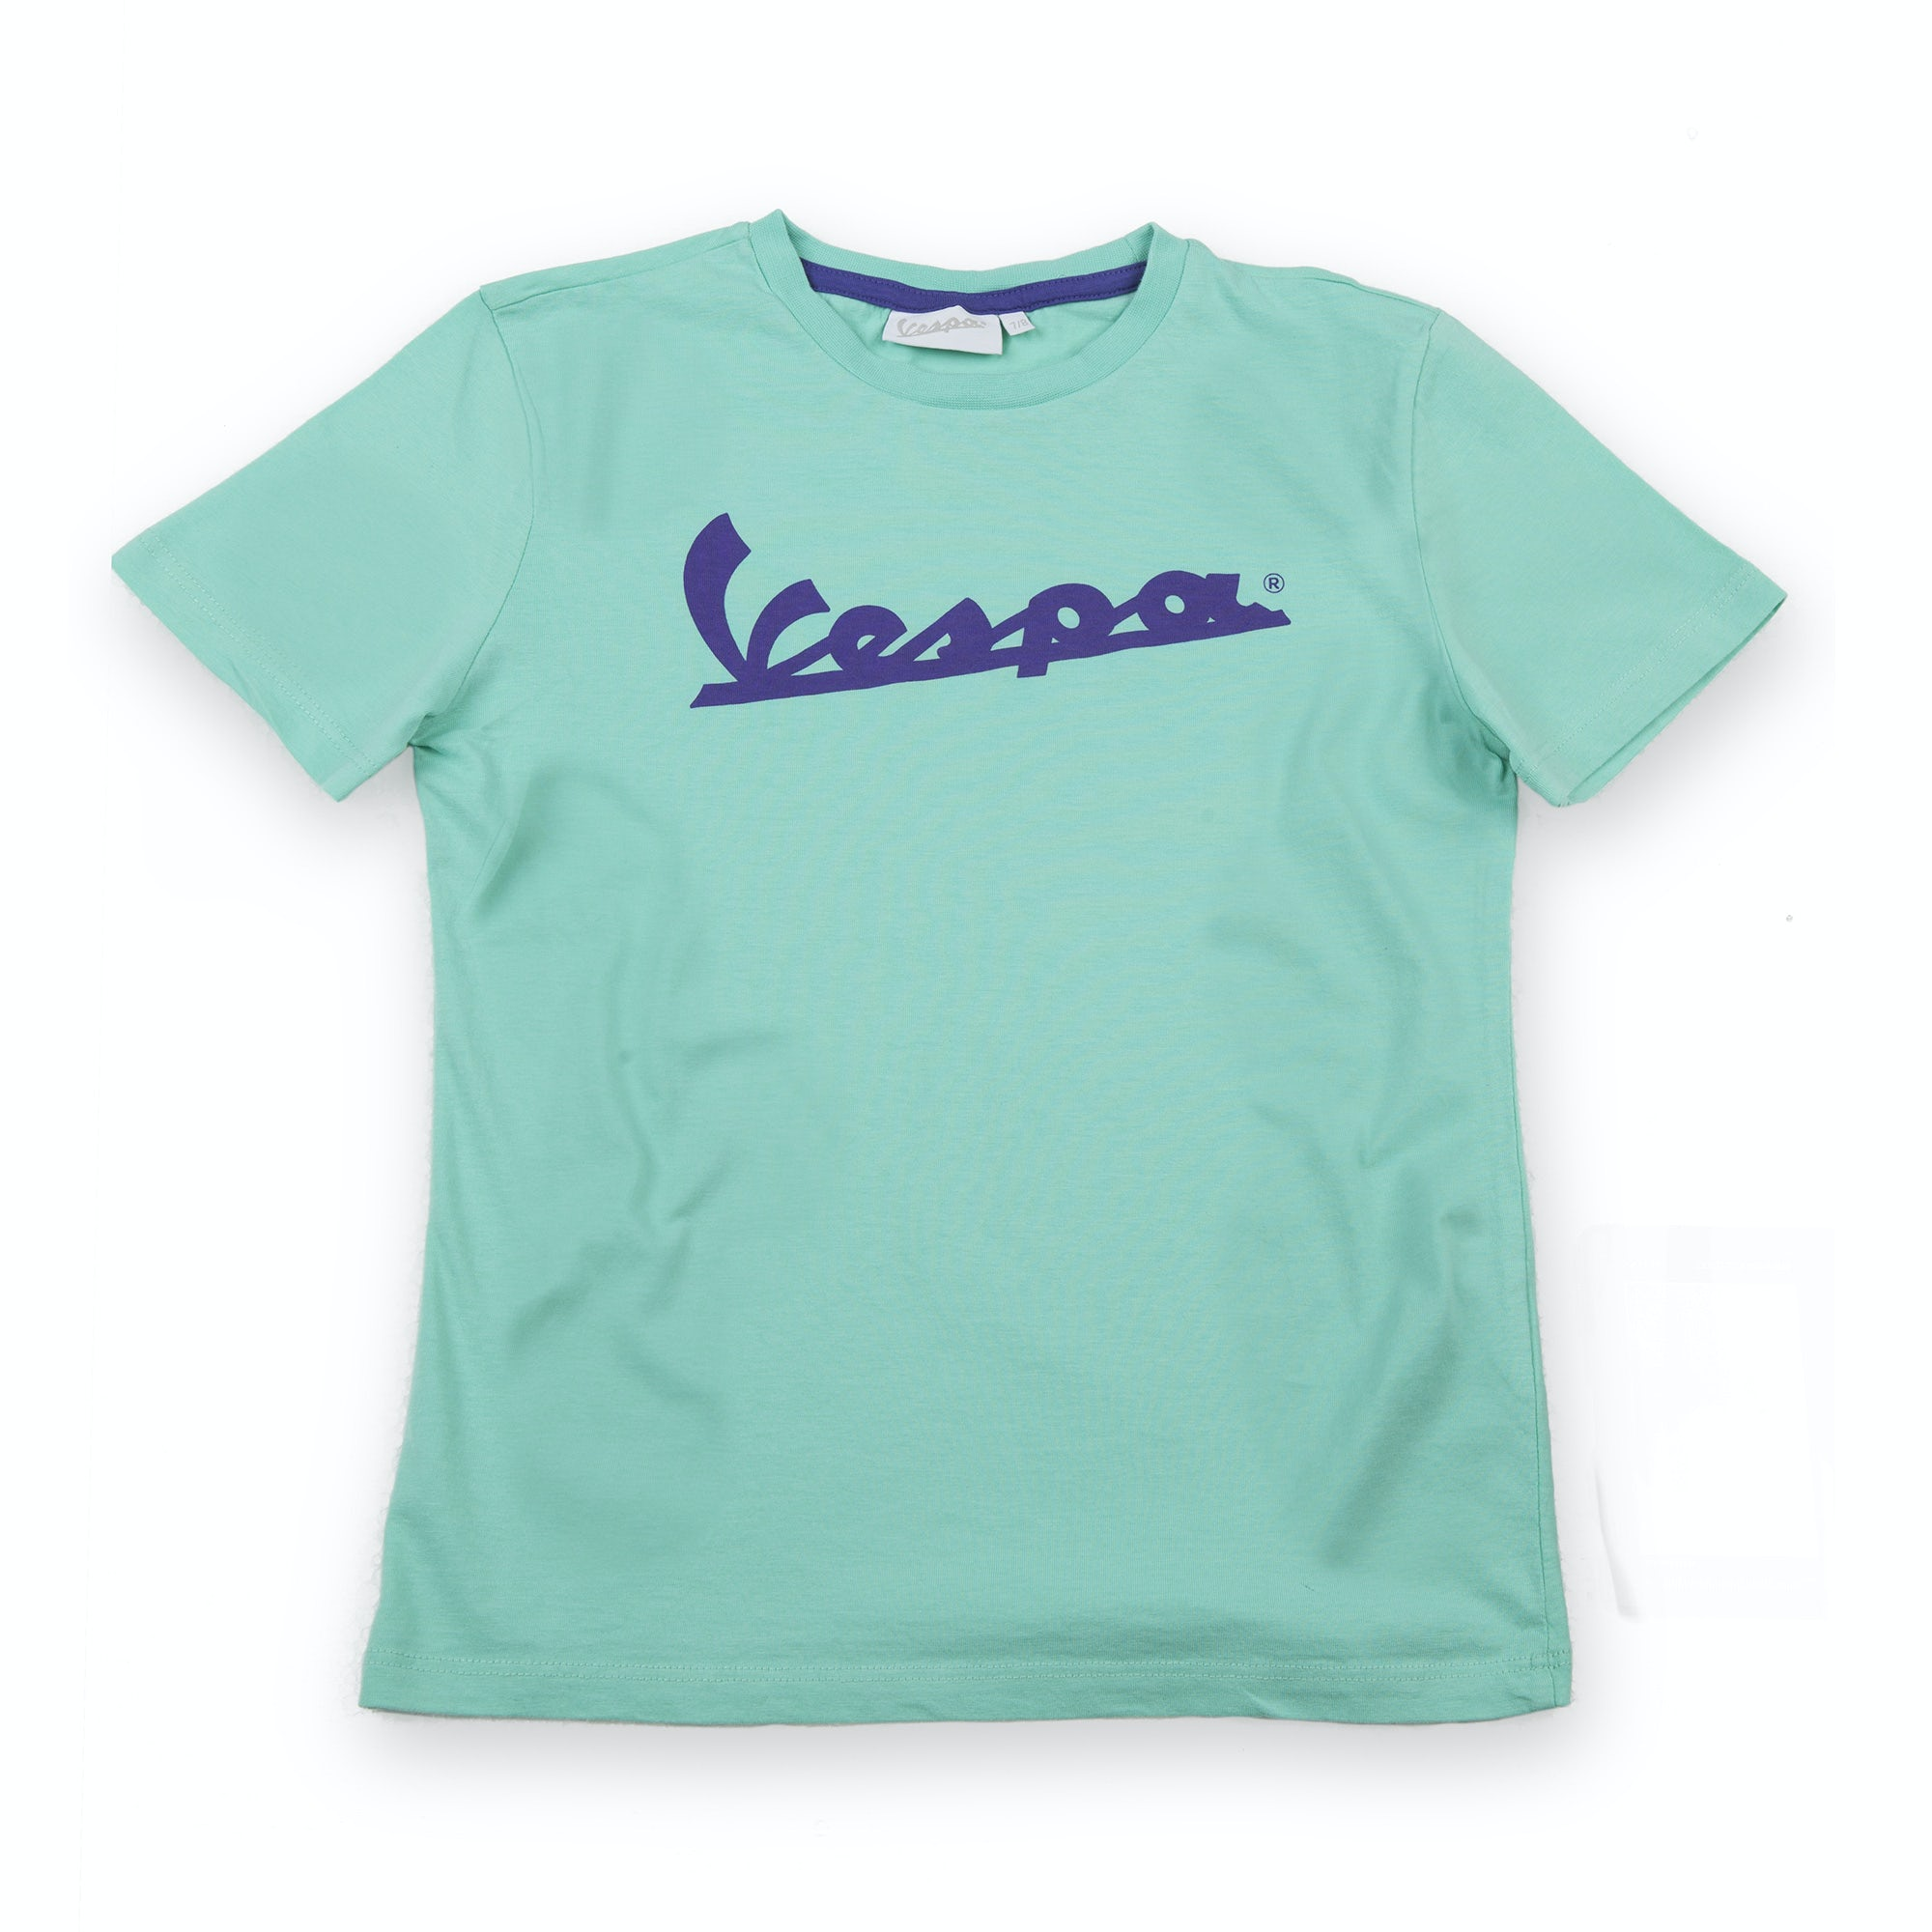 t shirt kids vespa colors. Black Bedroom Furniture Sets. Home Design Ideas